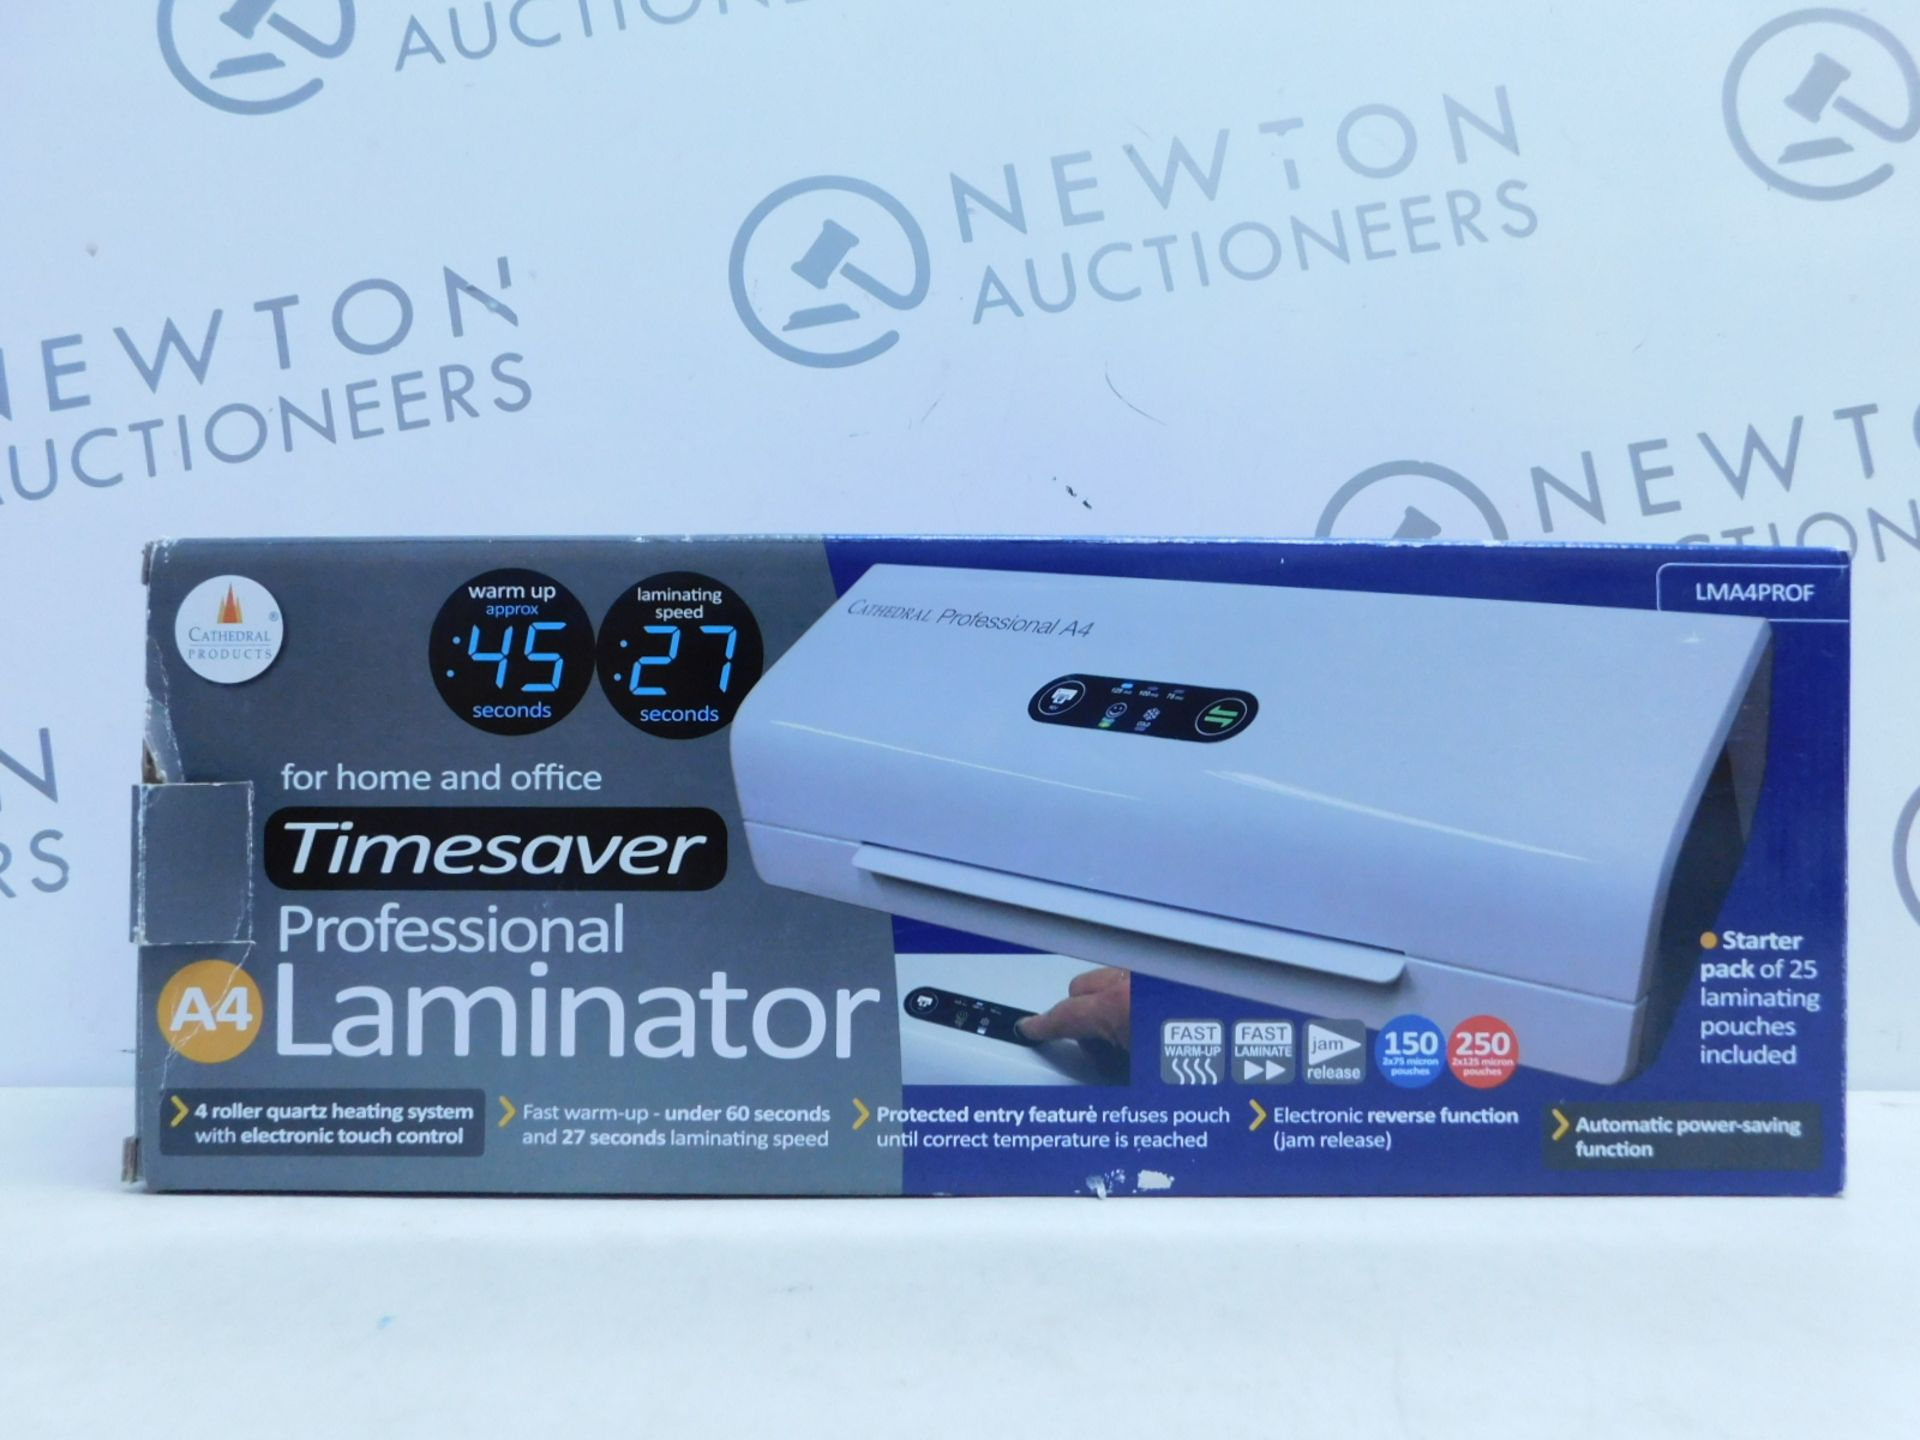 Lot 37 - 1 BOXED MONOLITH FAST WARM-UP A4 LAMINATOR RRP £32.99